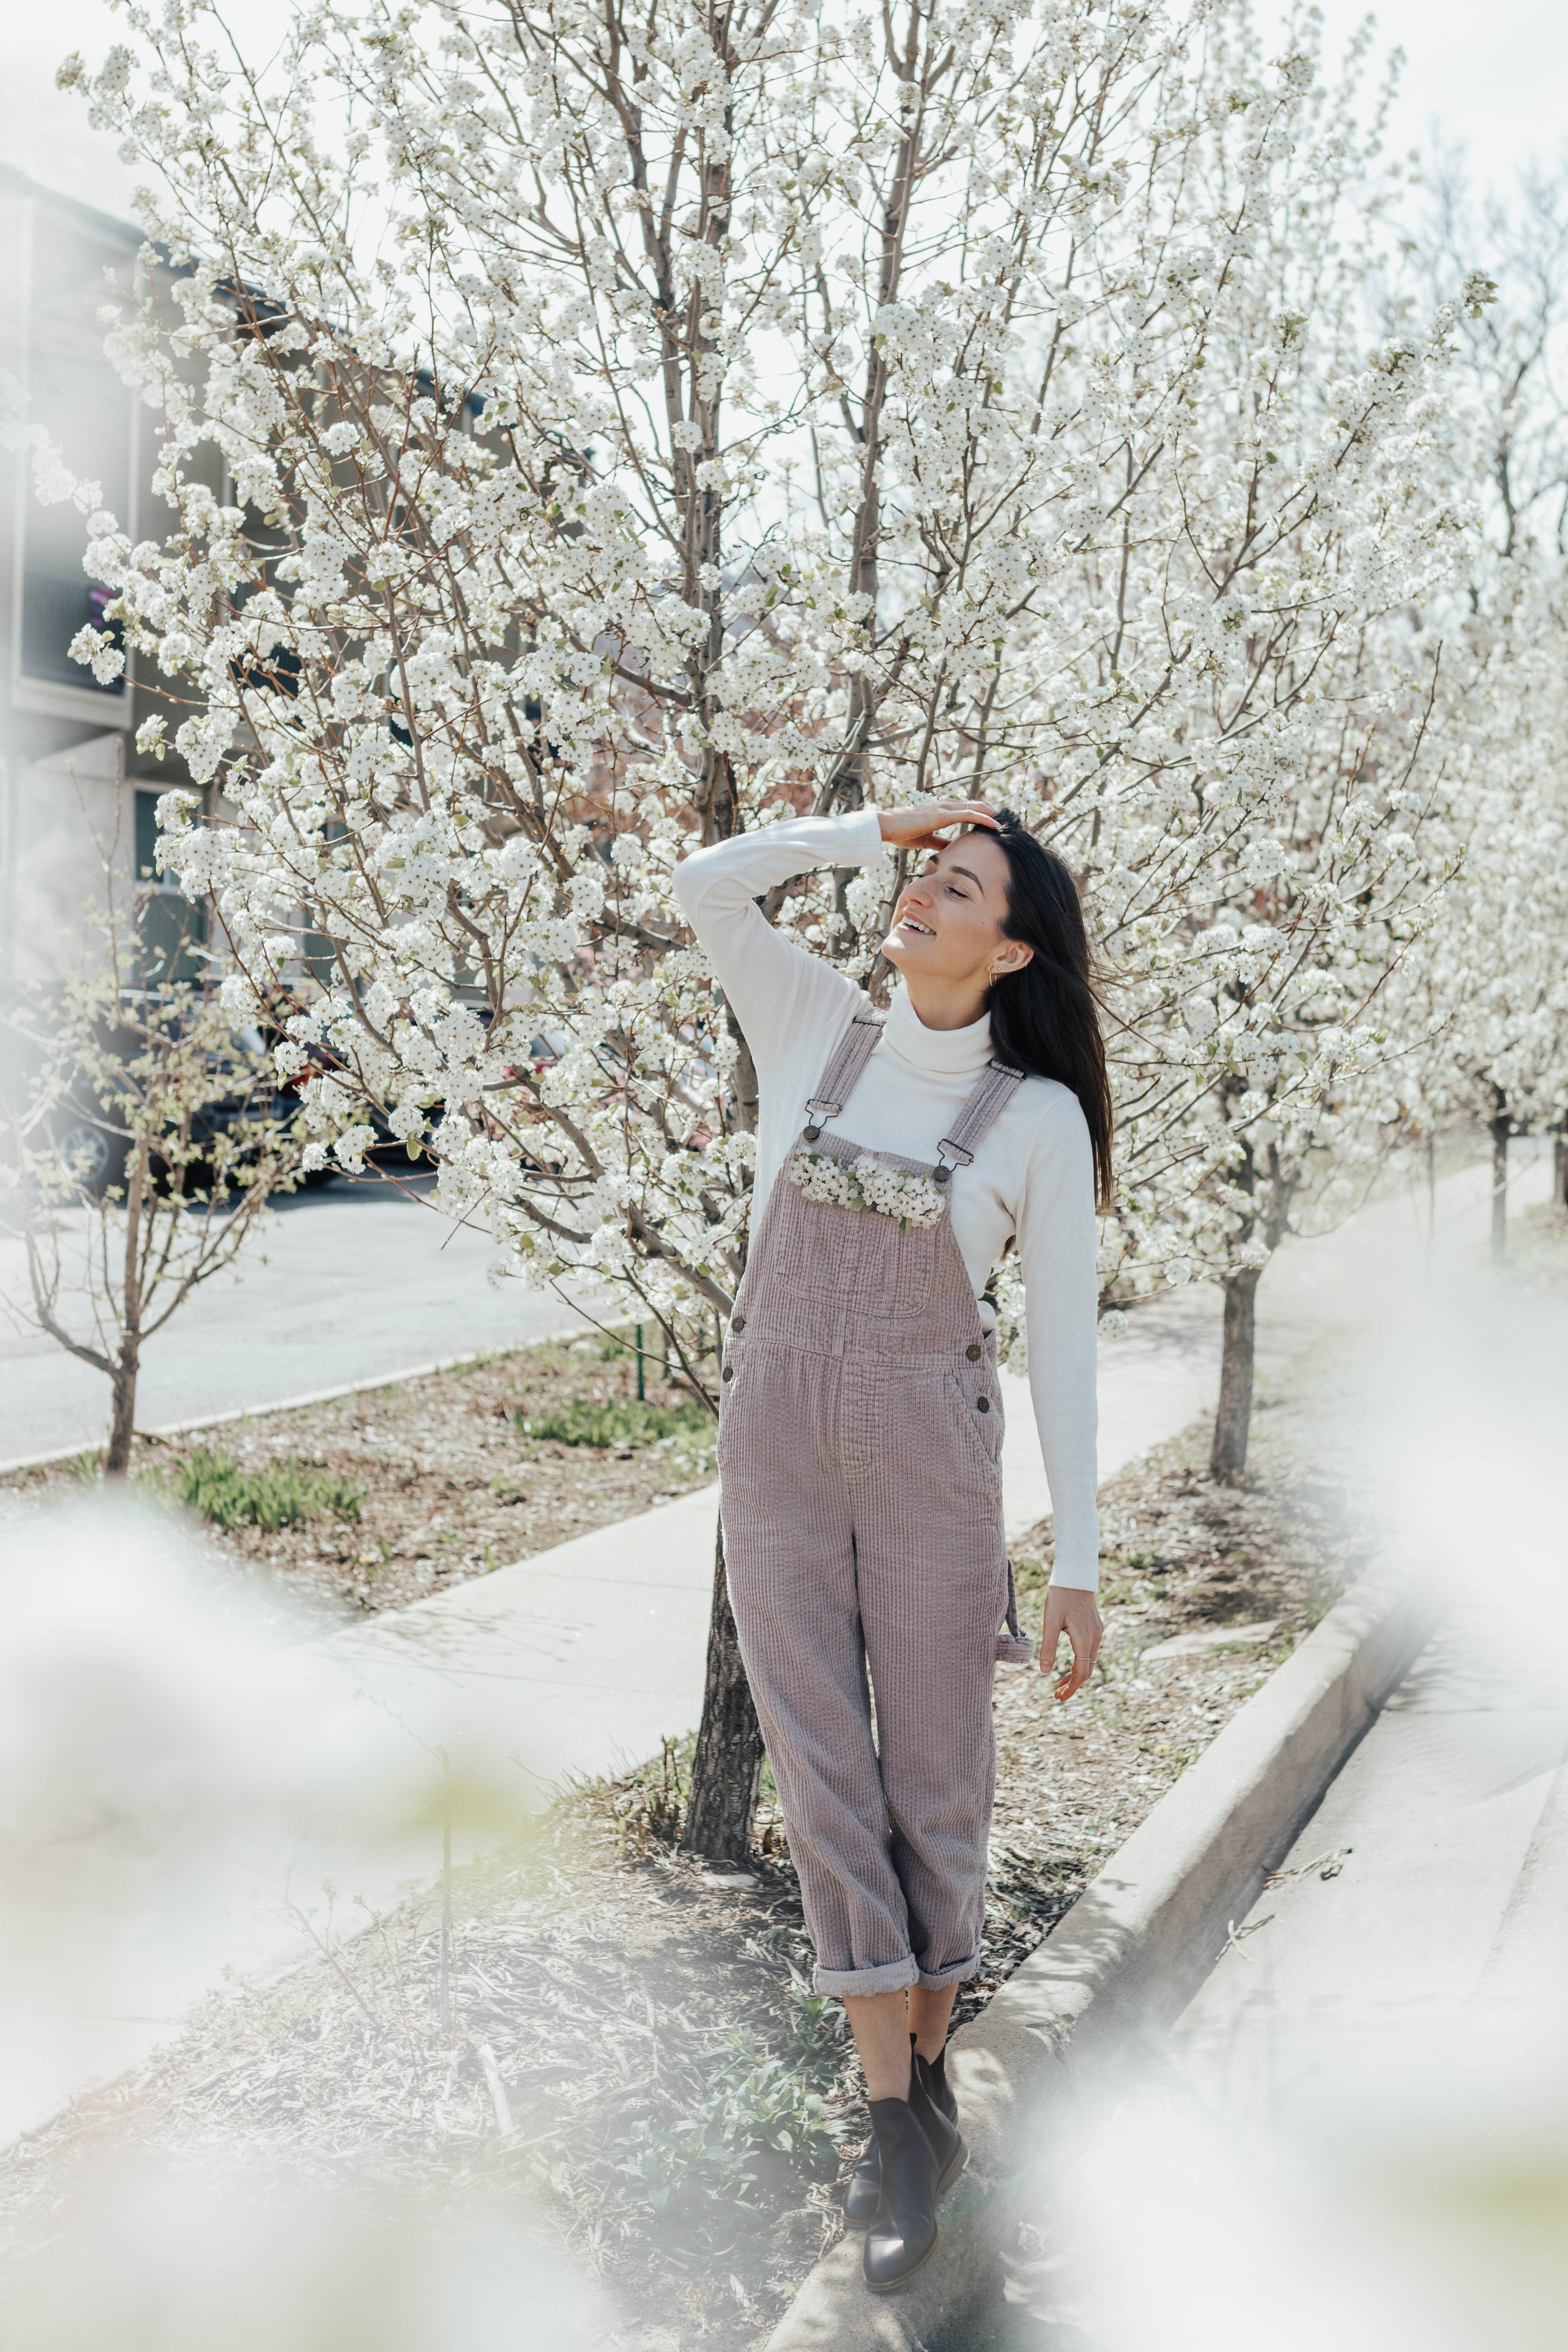 Urban Outfitters Beige Corduroy Overalls & Everlane Booties